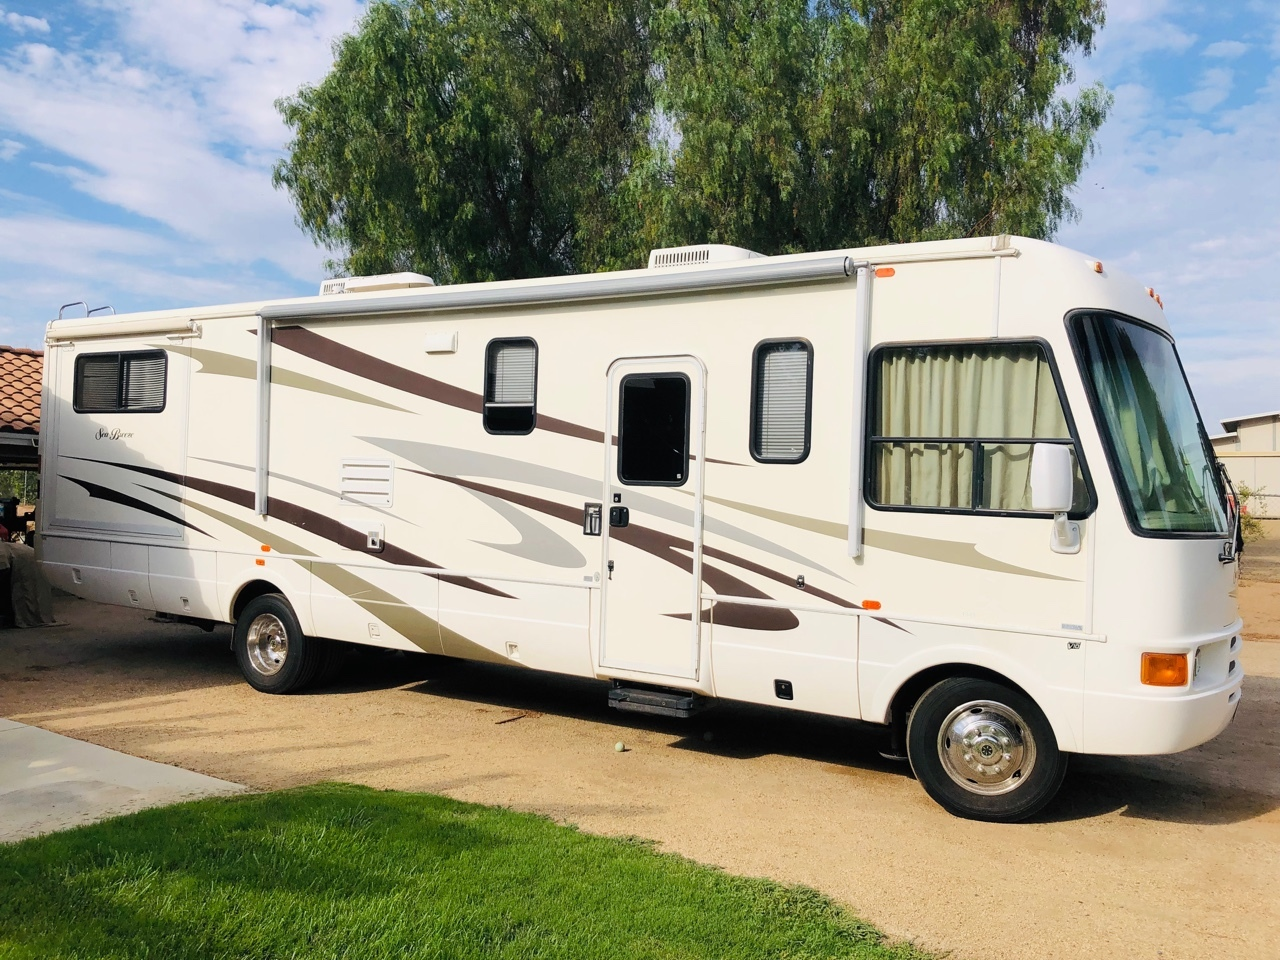 Sea Breeze For Sale - National Cl A Motorhomes - RV Trader on